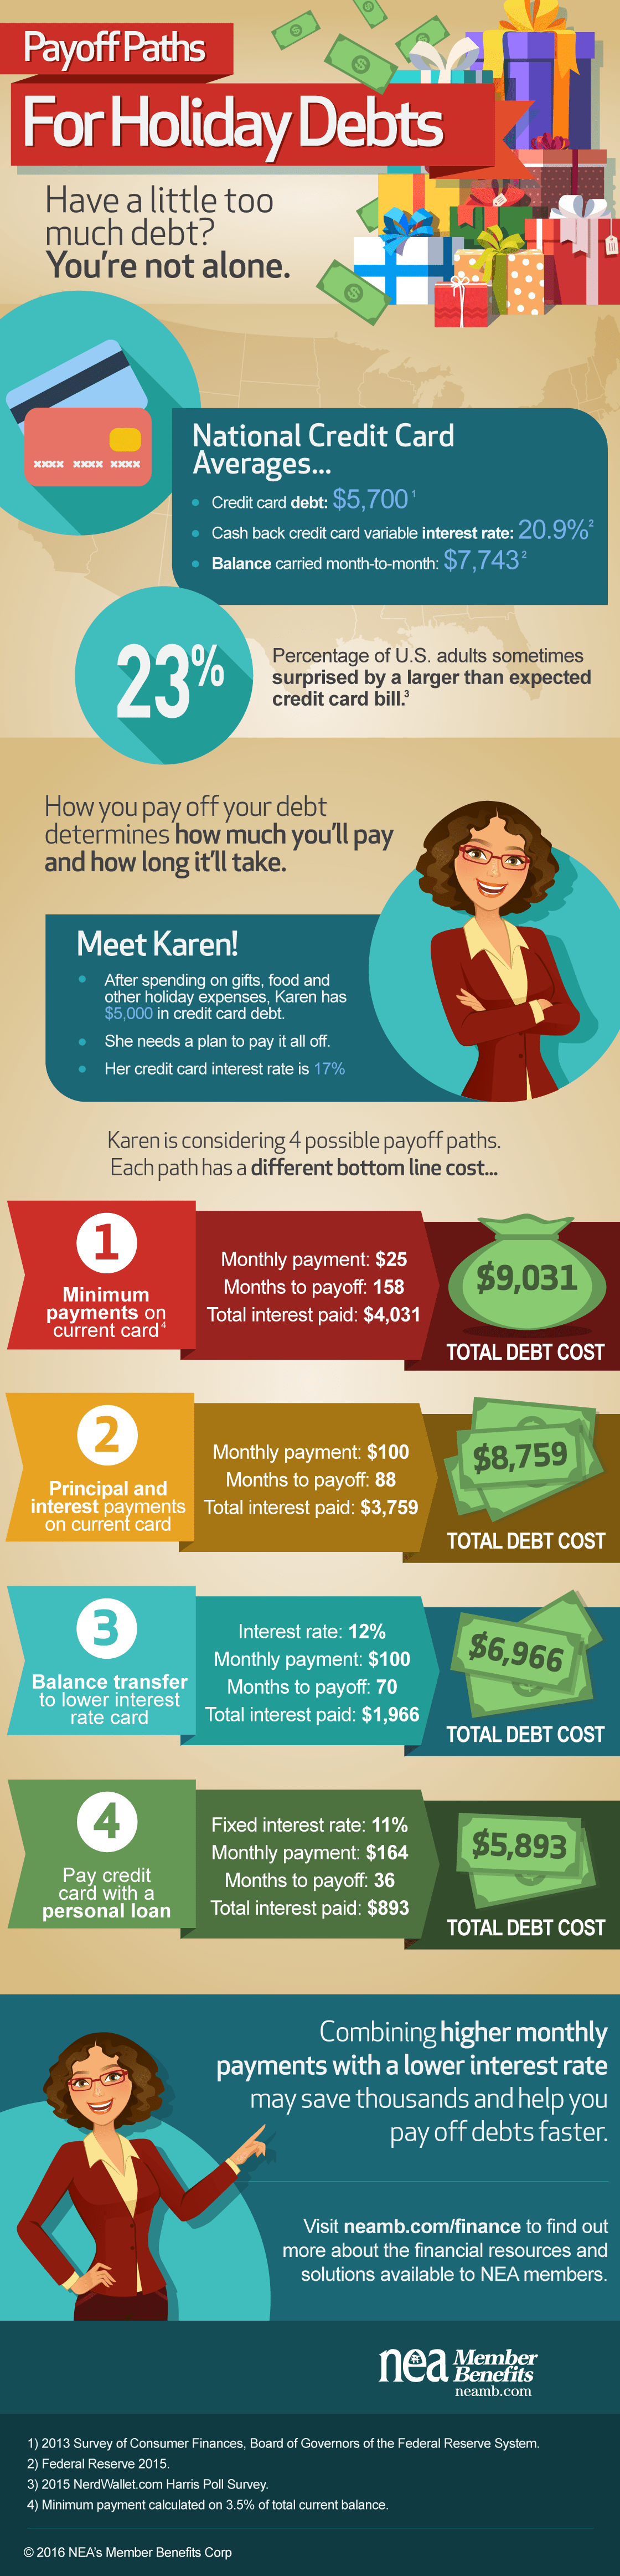 Holiday Debt Payoff Infographic